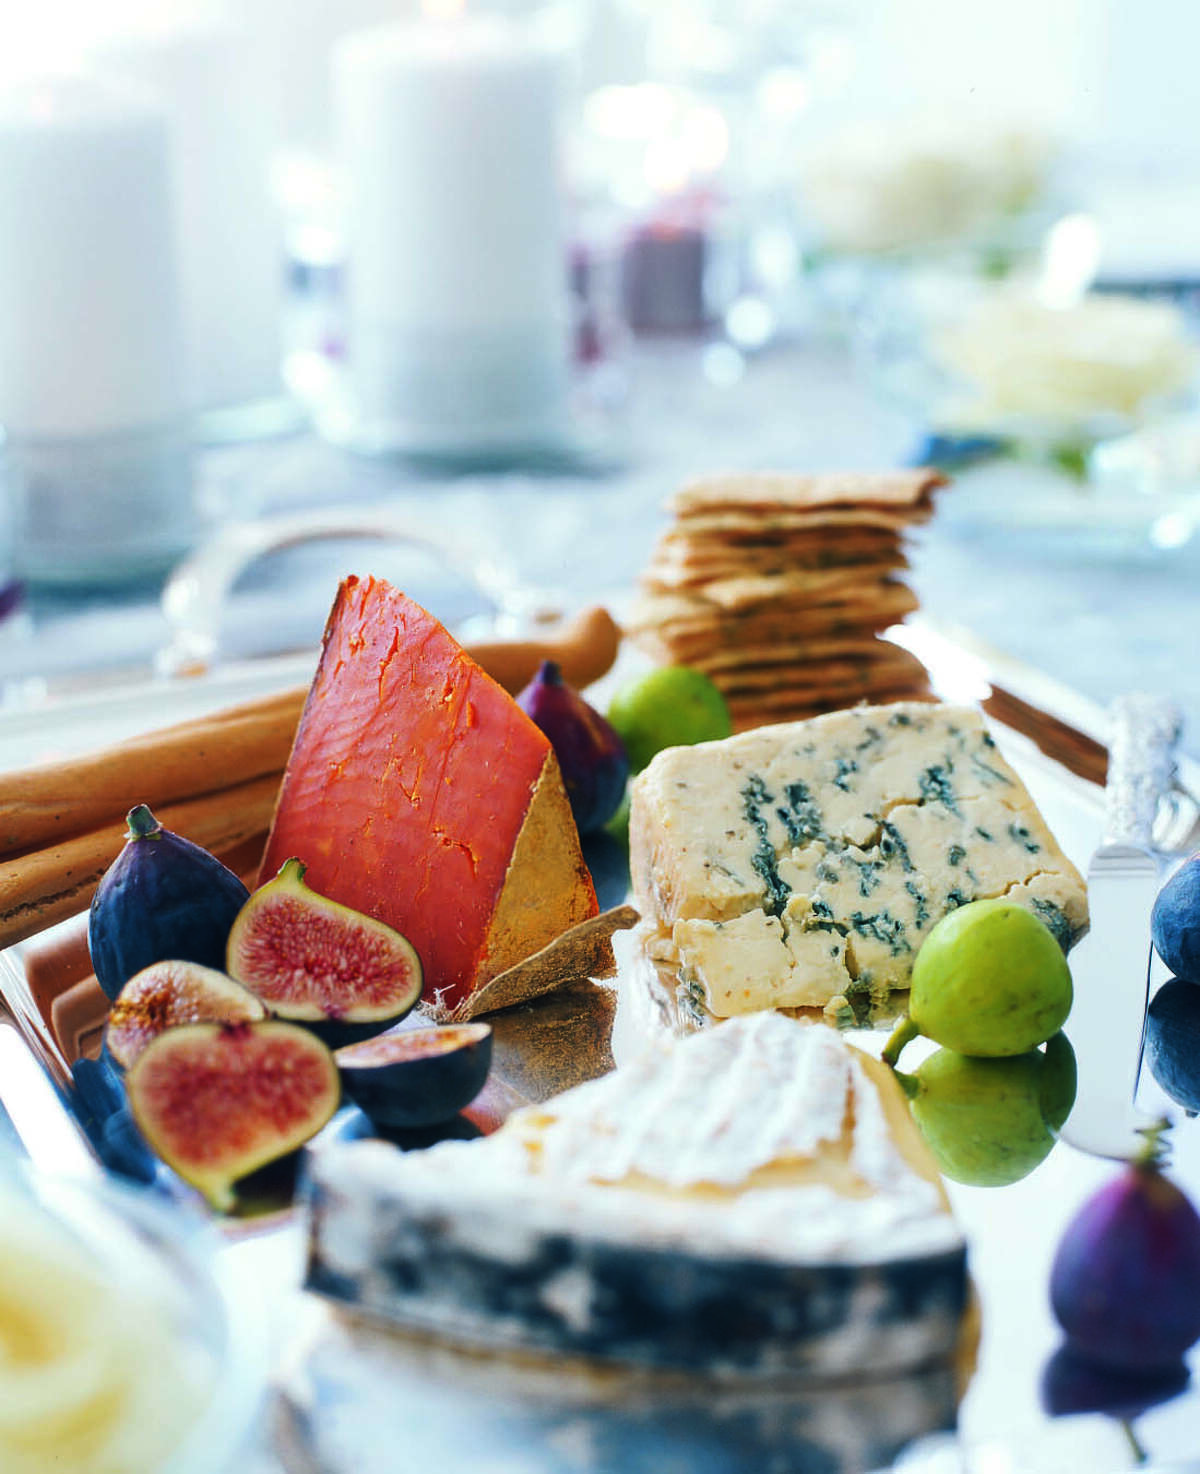 Say Cheese Wednesday, Jan. 20 is National Cheese Lover's Day.